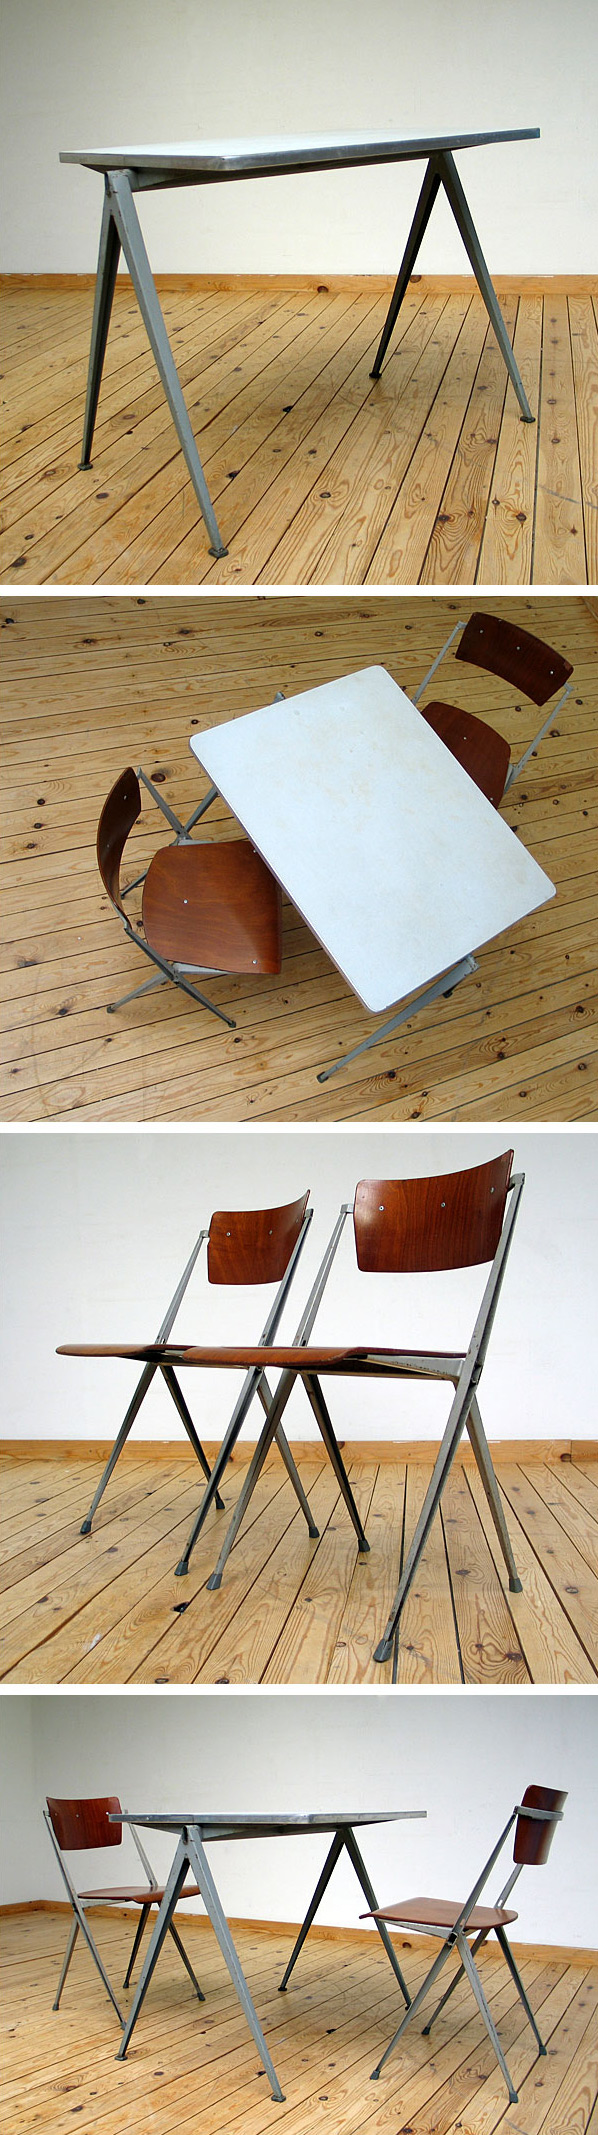 2 industrial Pyramid chairs and table Wim Rietveld De Cirkel Large